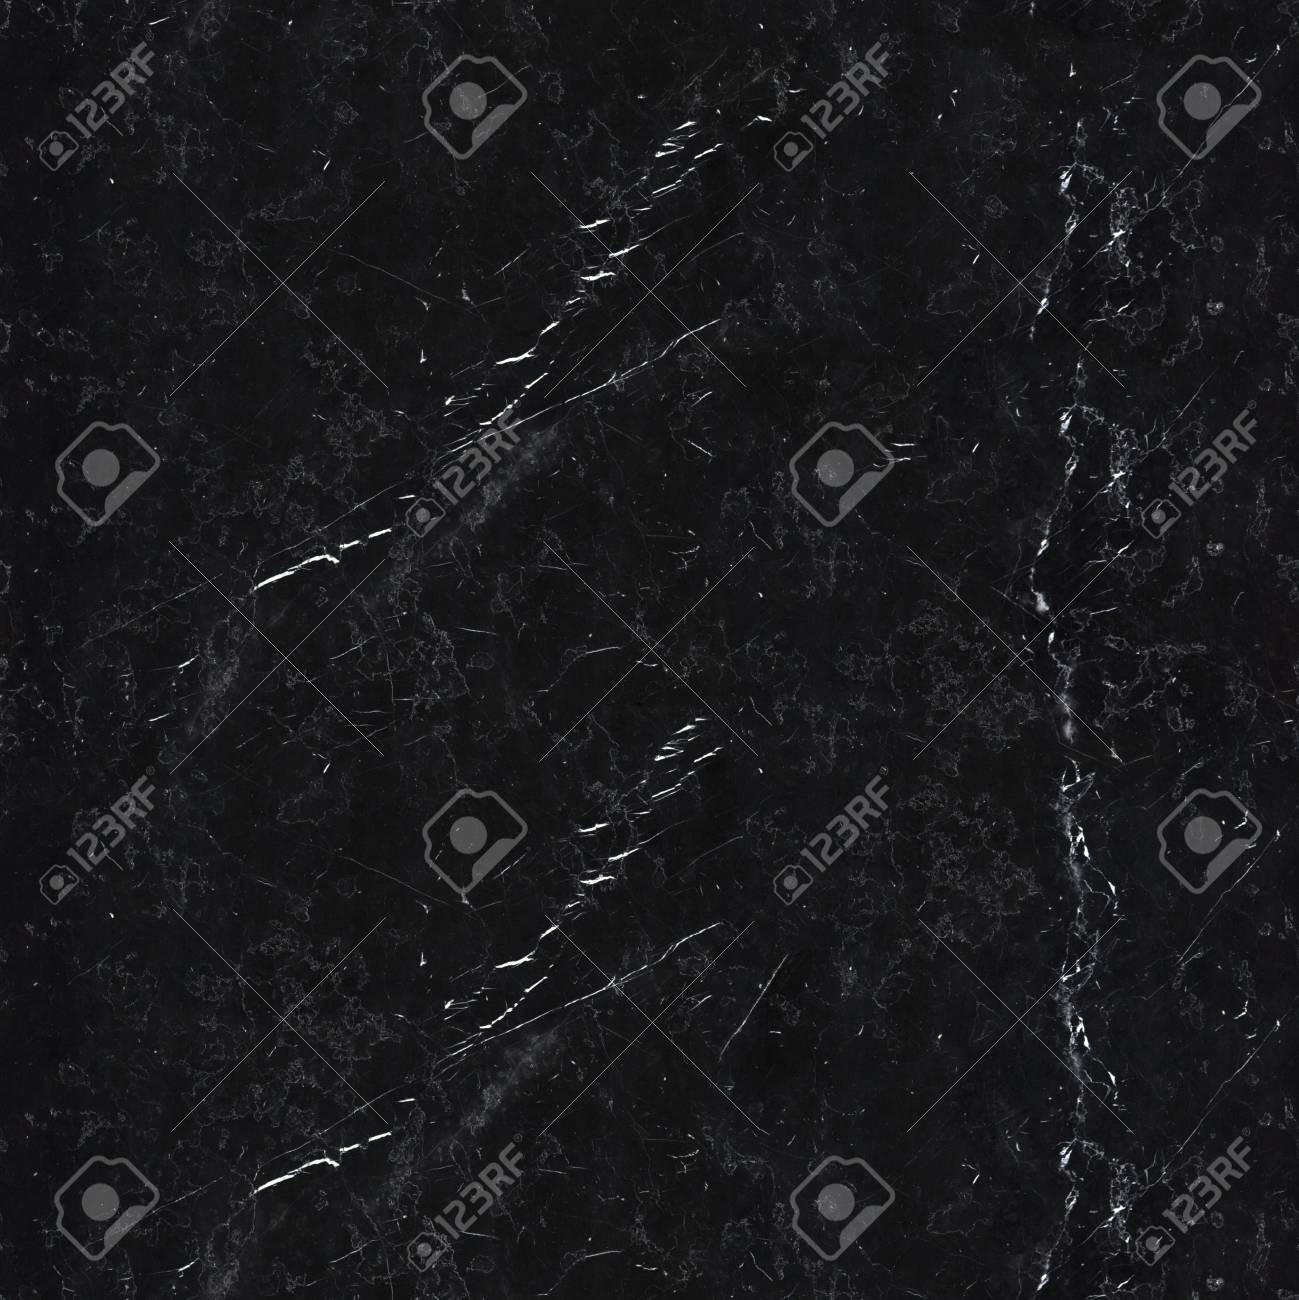 Close Up Of Black Marble Texture Seamless Square Background Stock Photo Picture And Royalty Free Image Image 86059314